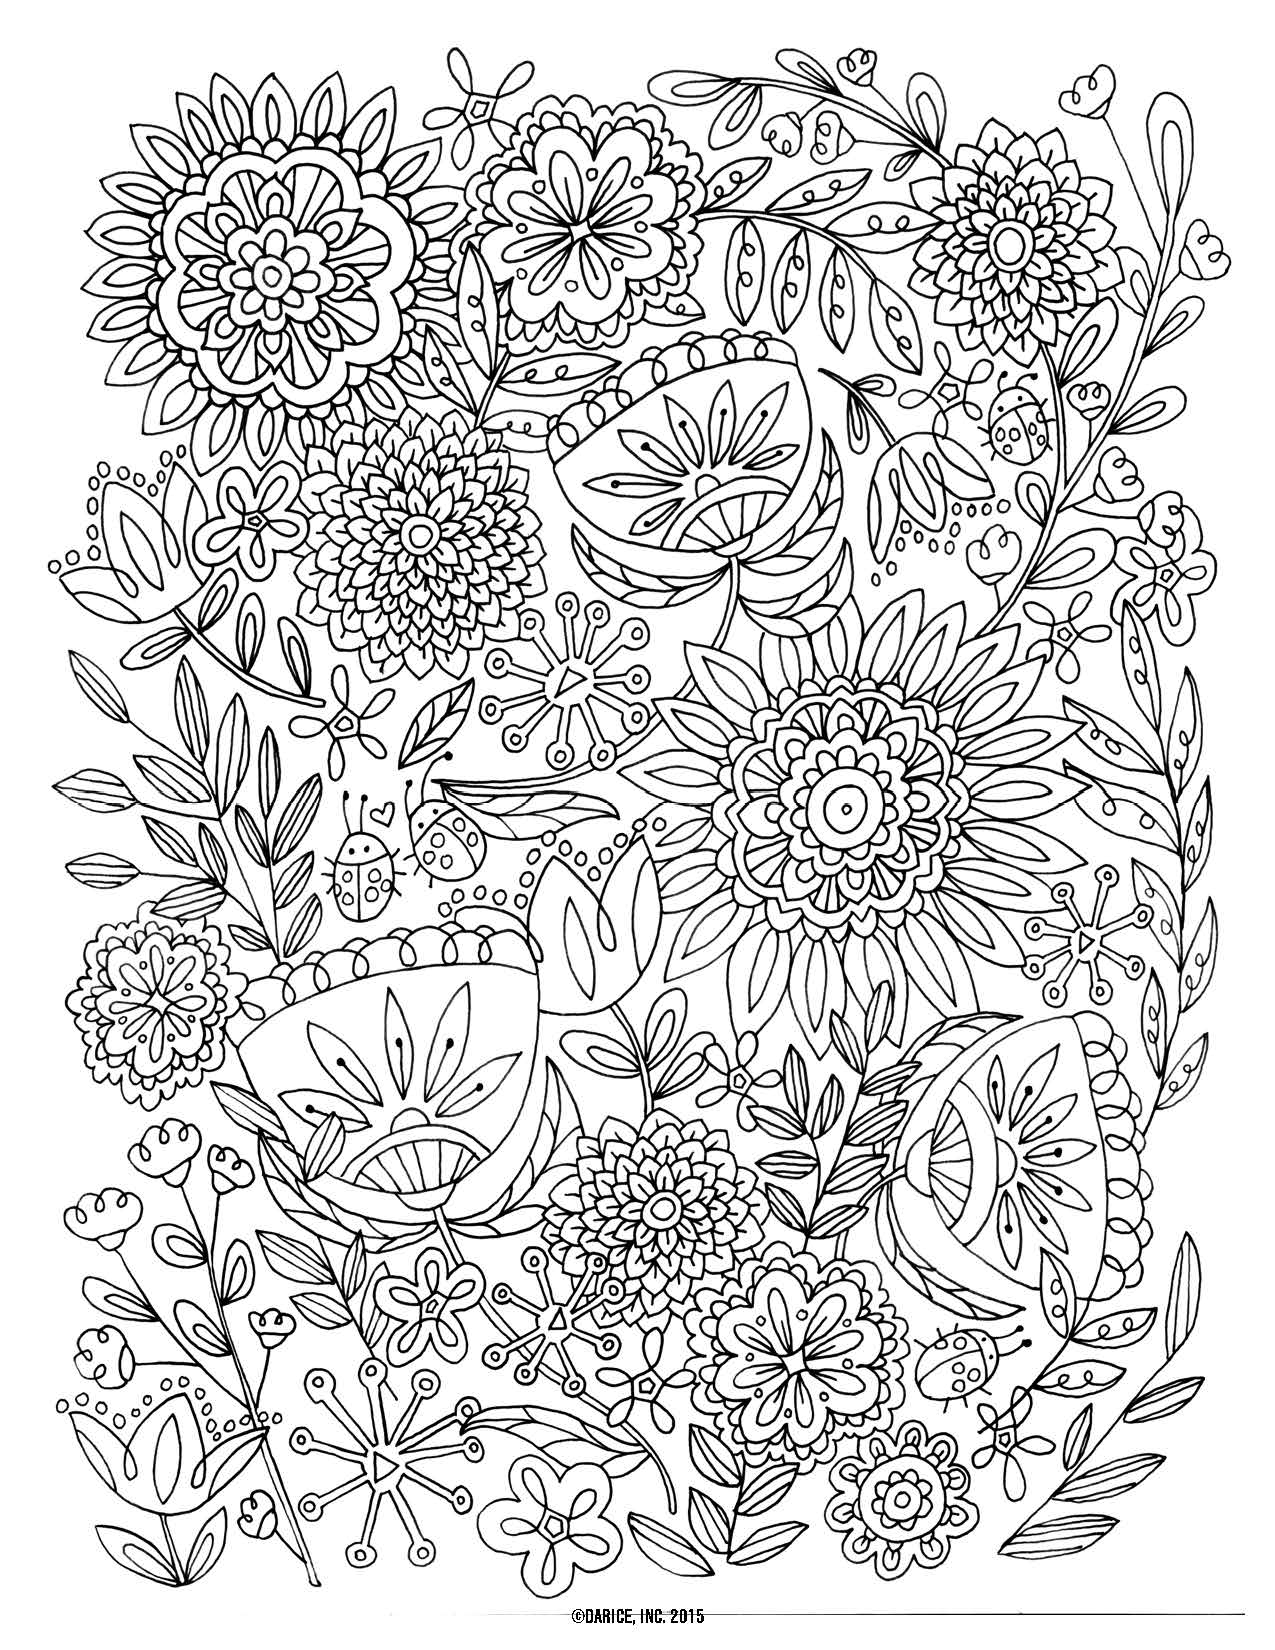 free adult coloring pages - 9 free printable adult coloring pages